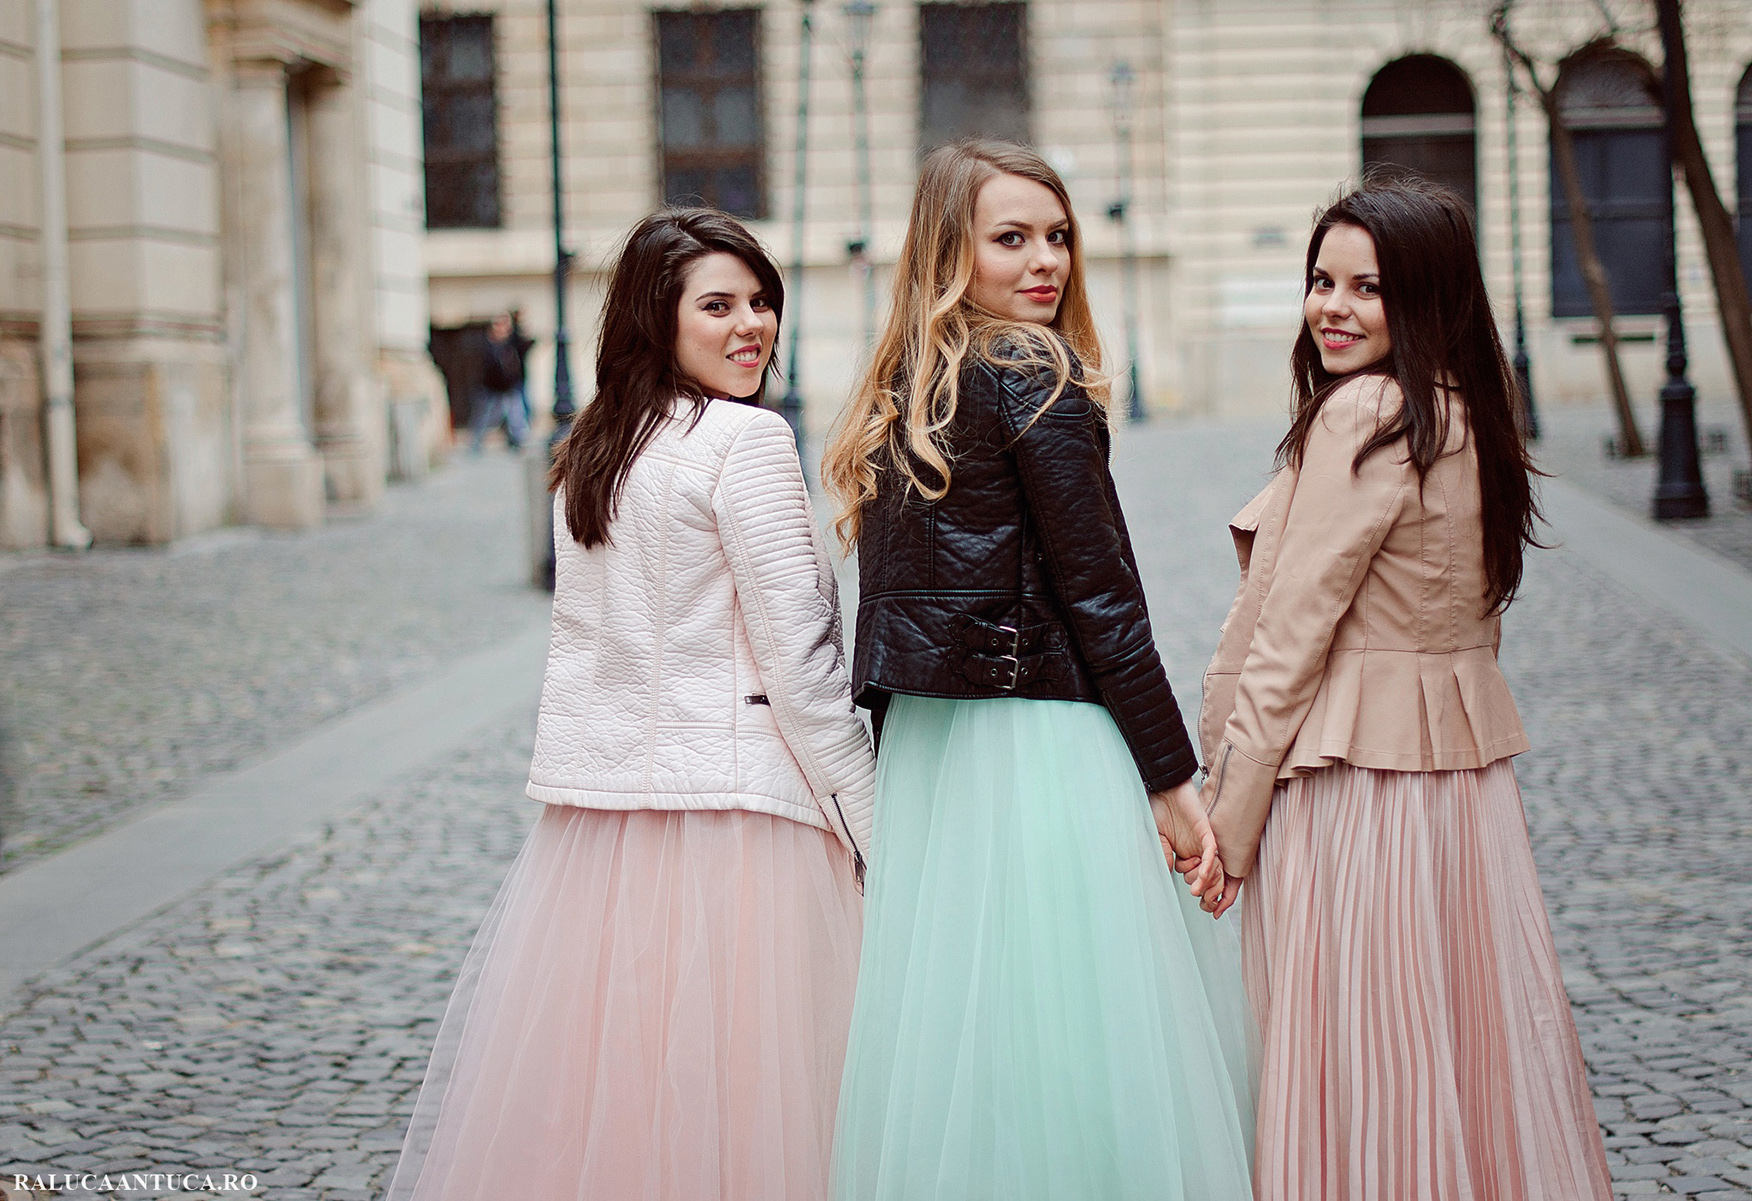 womens-day-march-8-mint-tulle-skirt-pink-tulle-feminine-outfit (3)